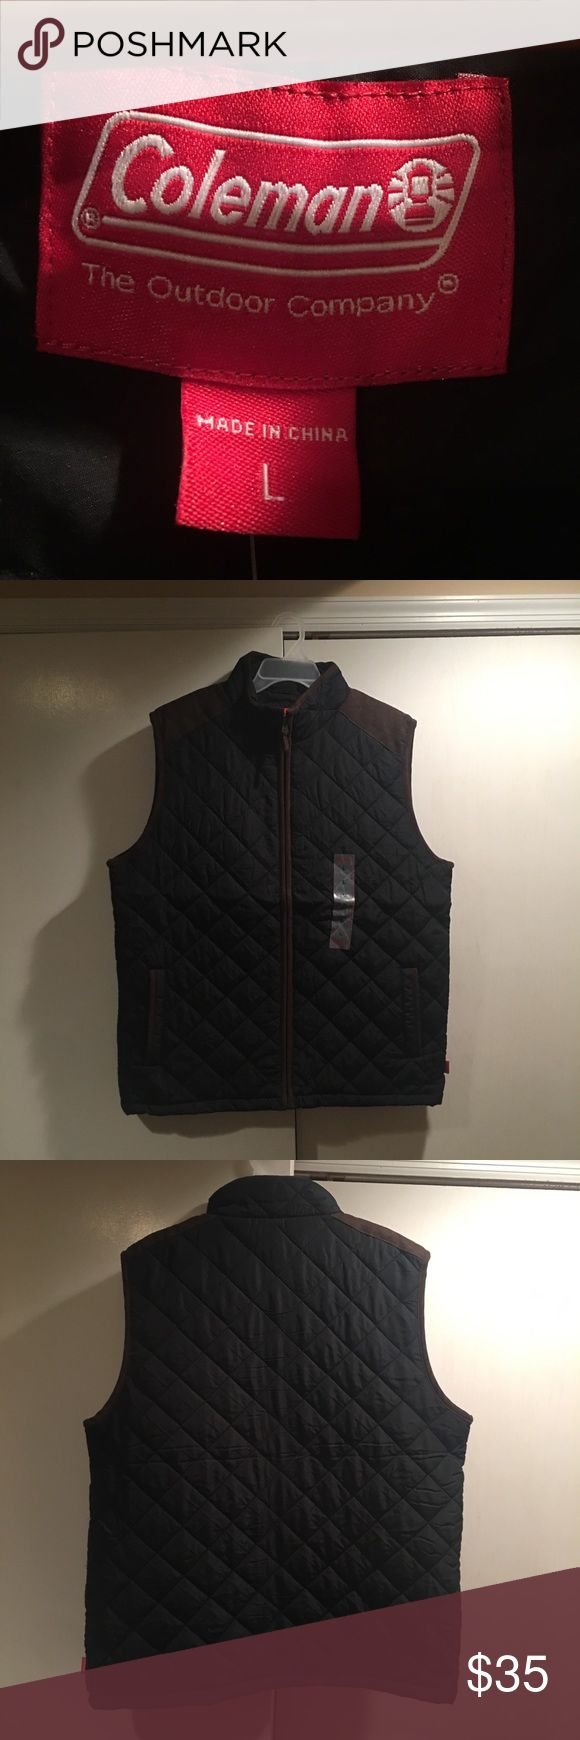 New Coleman Outdoor Company Bubble Vest/Jacket! Brand new! Never worn before! Jackets & Coats Vests